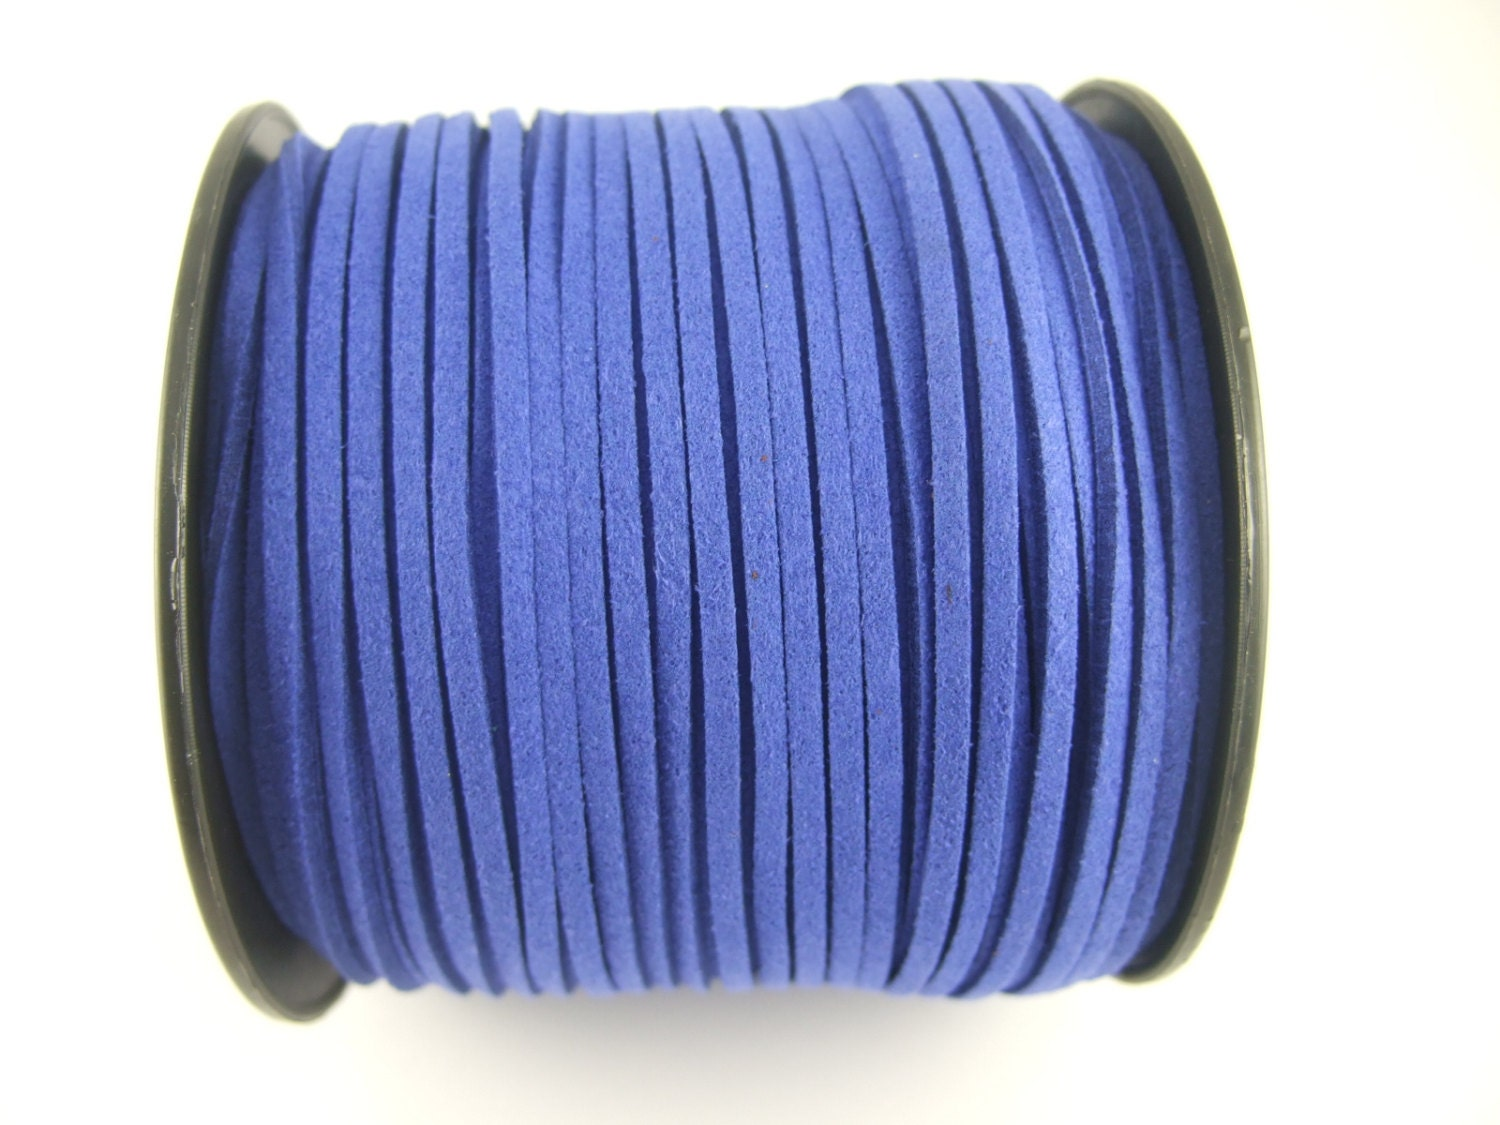 180a24859de1 100 Yards Royal Blue 2.5mm Flat Faux Suede Leather Long Cord for bracelet  necklace craft - SC30 from OrientFinds on Etsy Studio